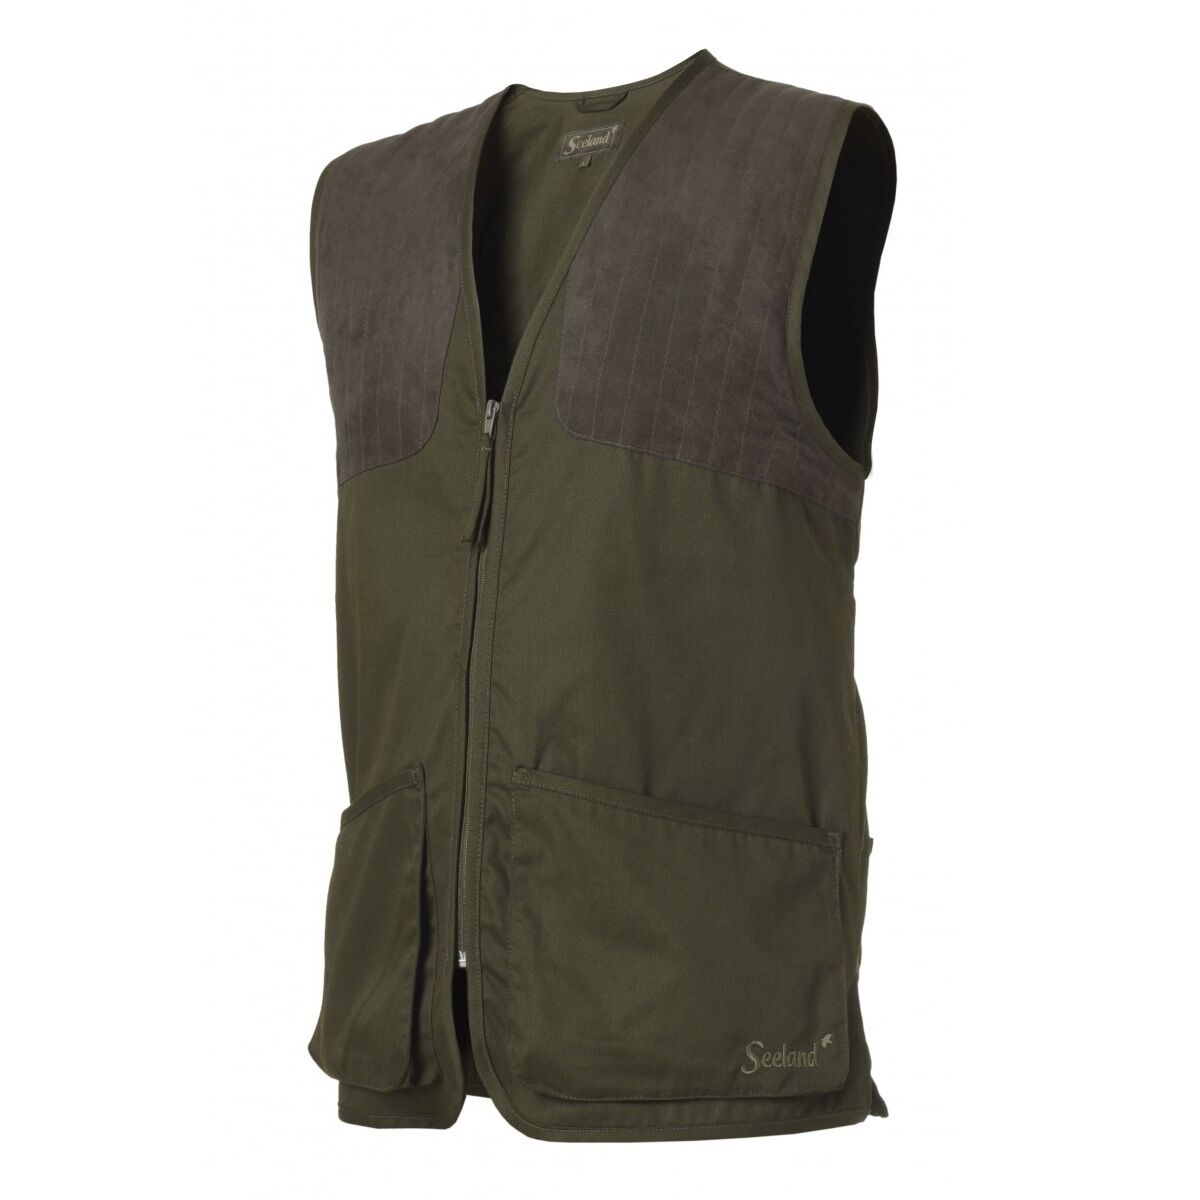 Seeland Weston Club Waistcoat - Pine Green - Sizes  S-4XL (Skeet Hunting)